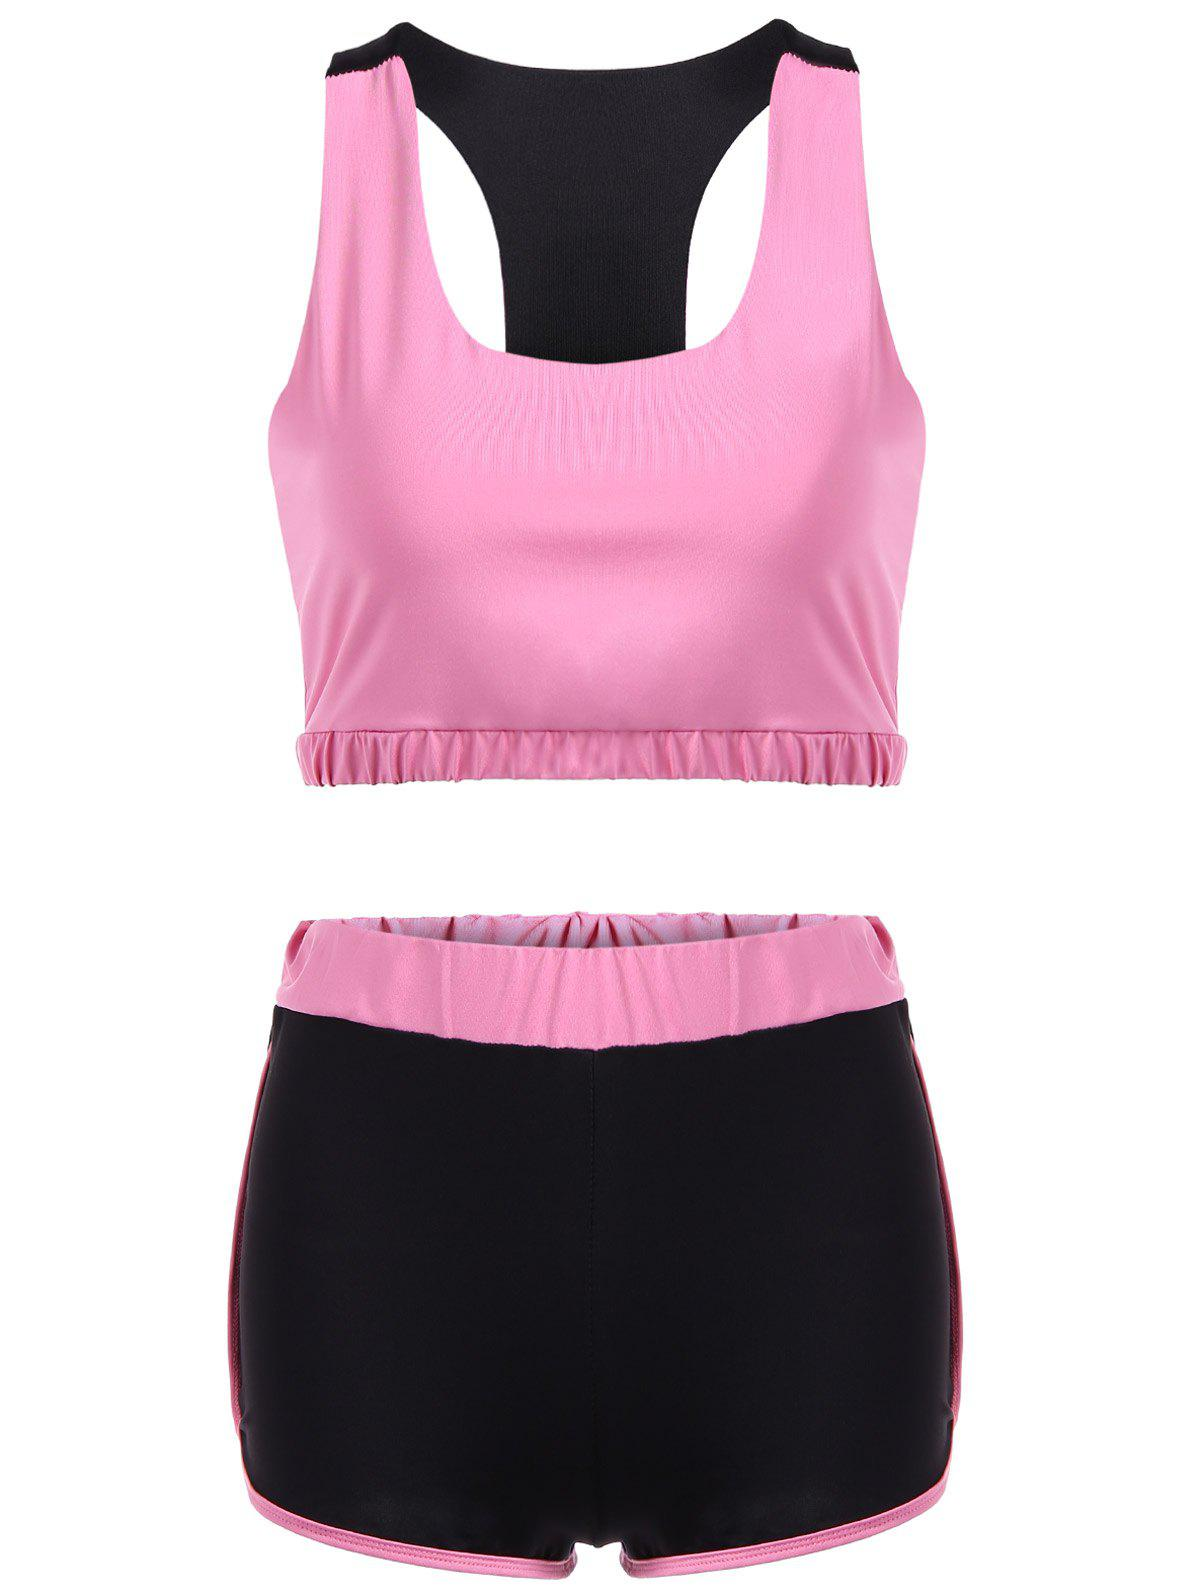 Racerback U Neck Sporty Bra and Shorts Twinset racerback u neck sporty bra and color block shorts twinset